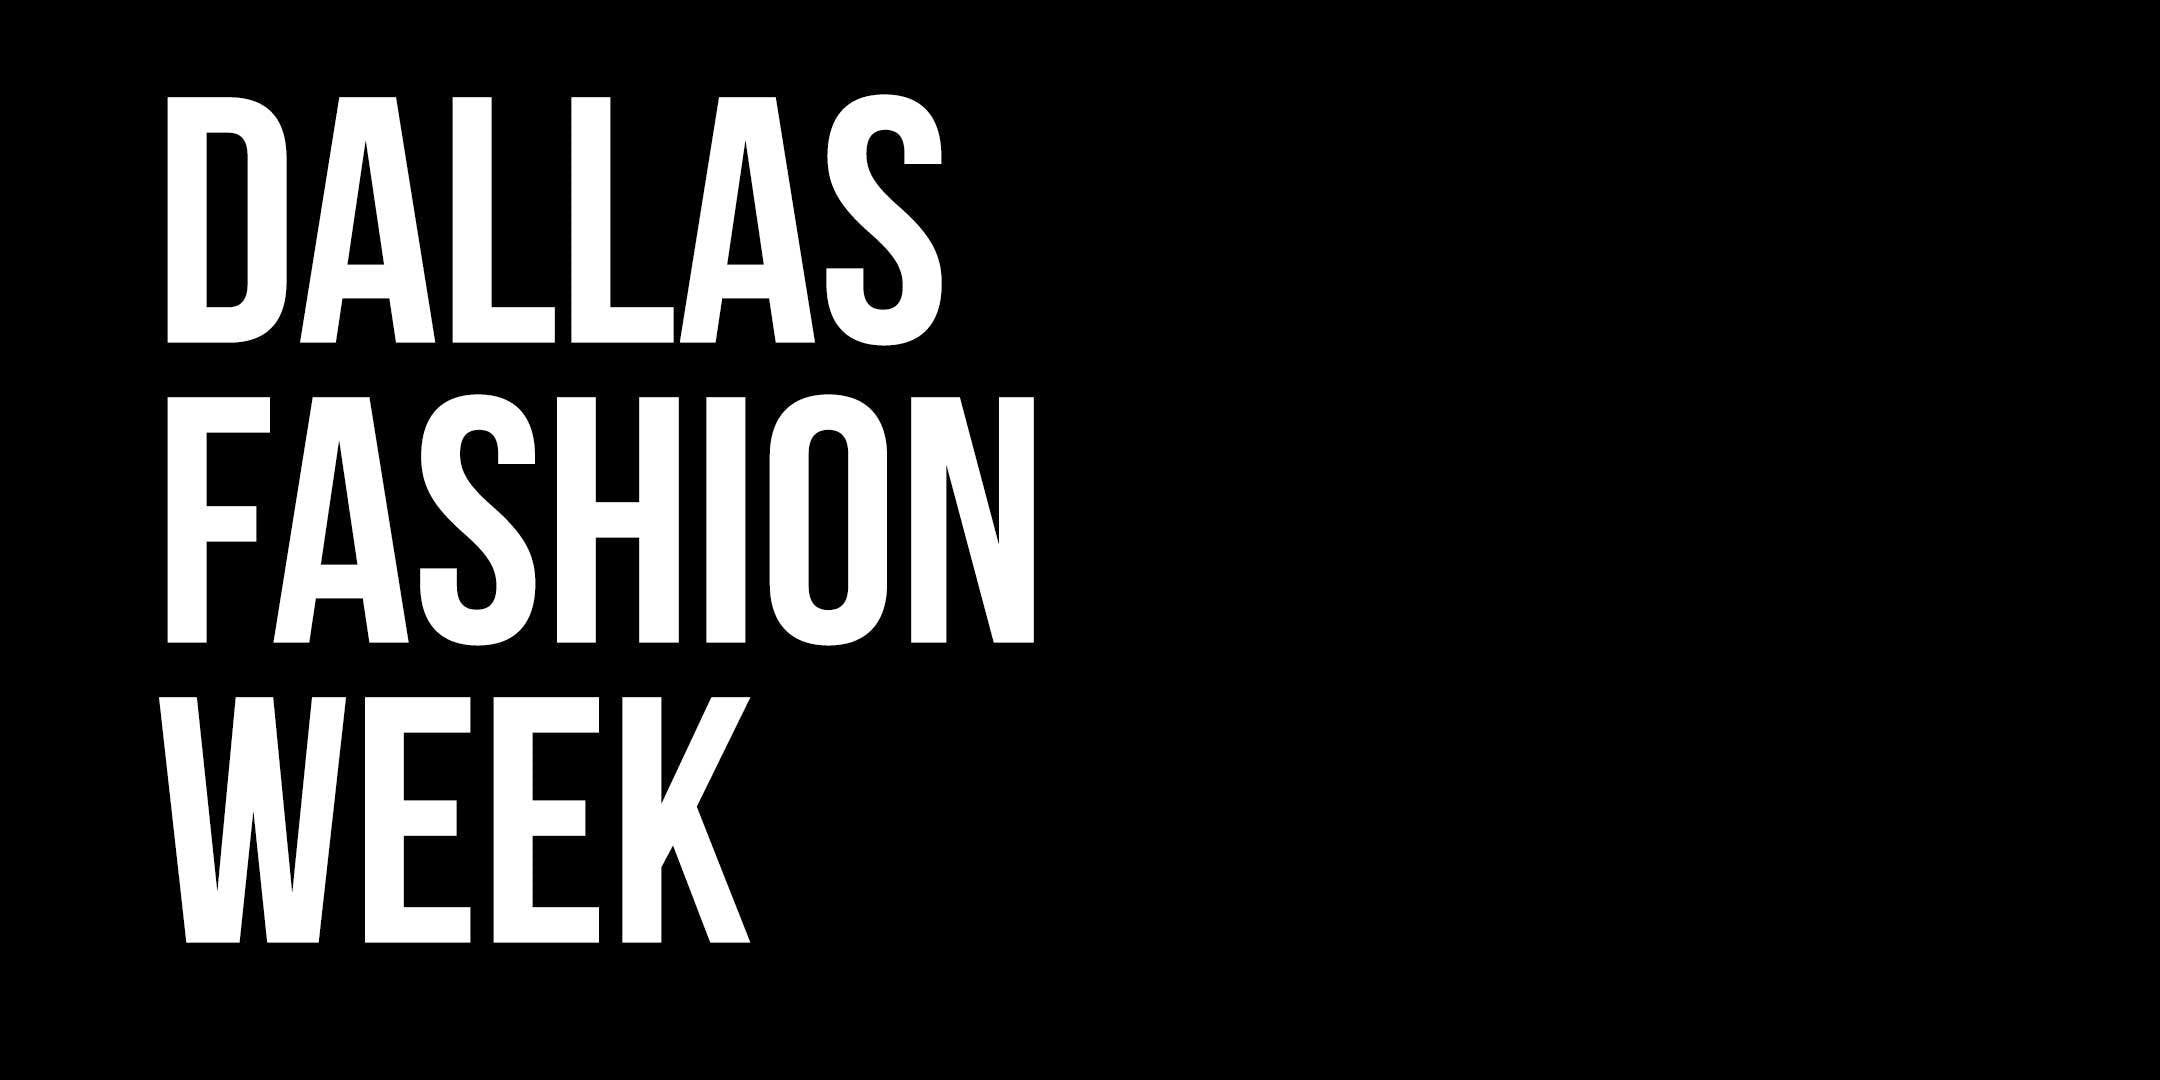 Dallas Fashion Week // January 3-6, 2019